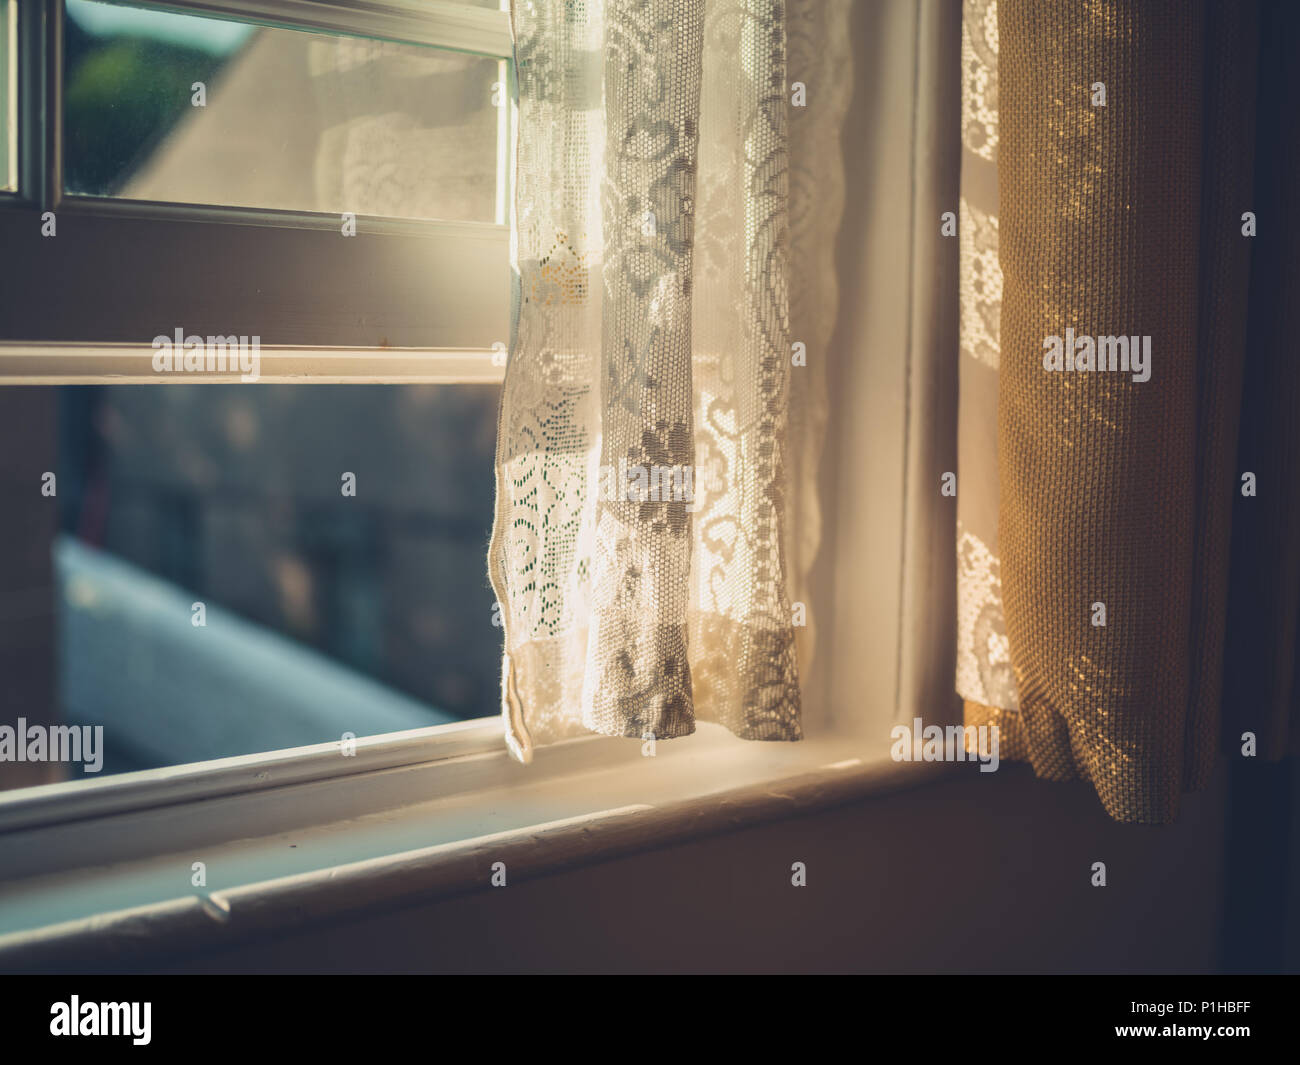 Afternoon sunlight hitting a curtain through the window - Stock Image